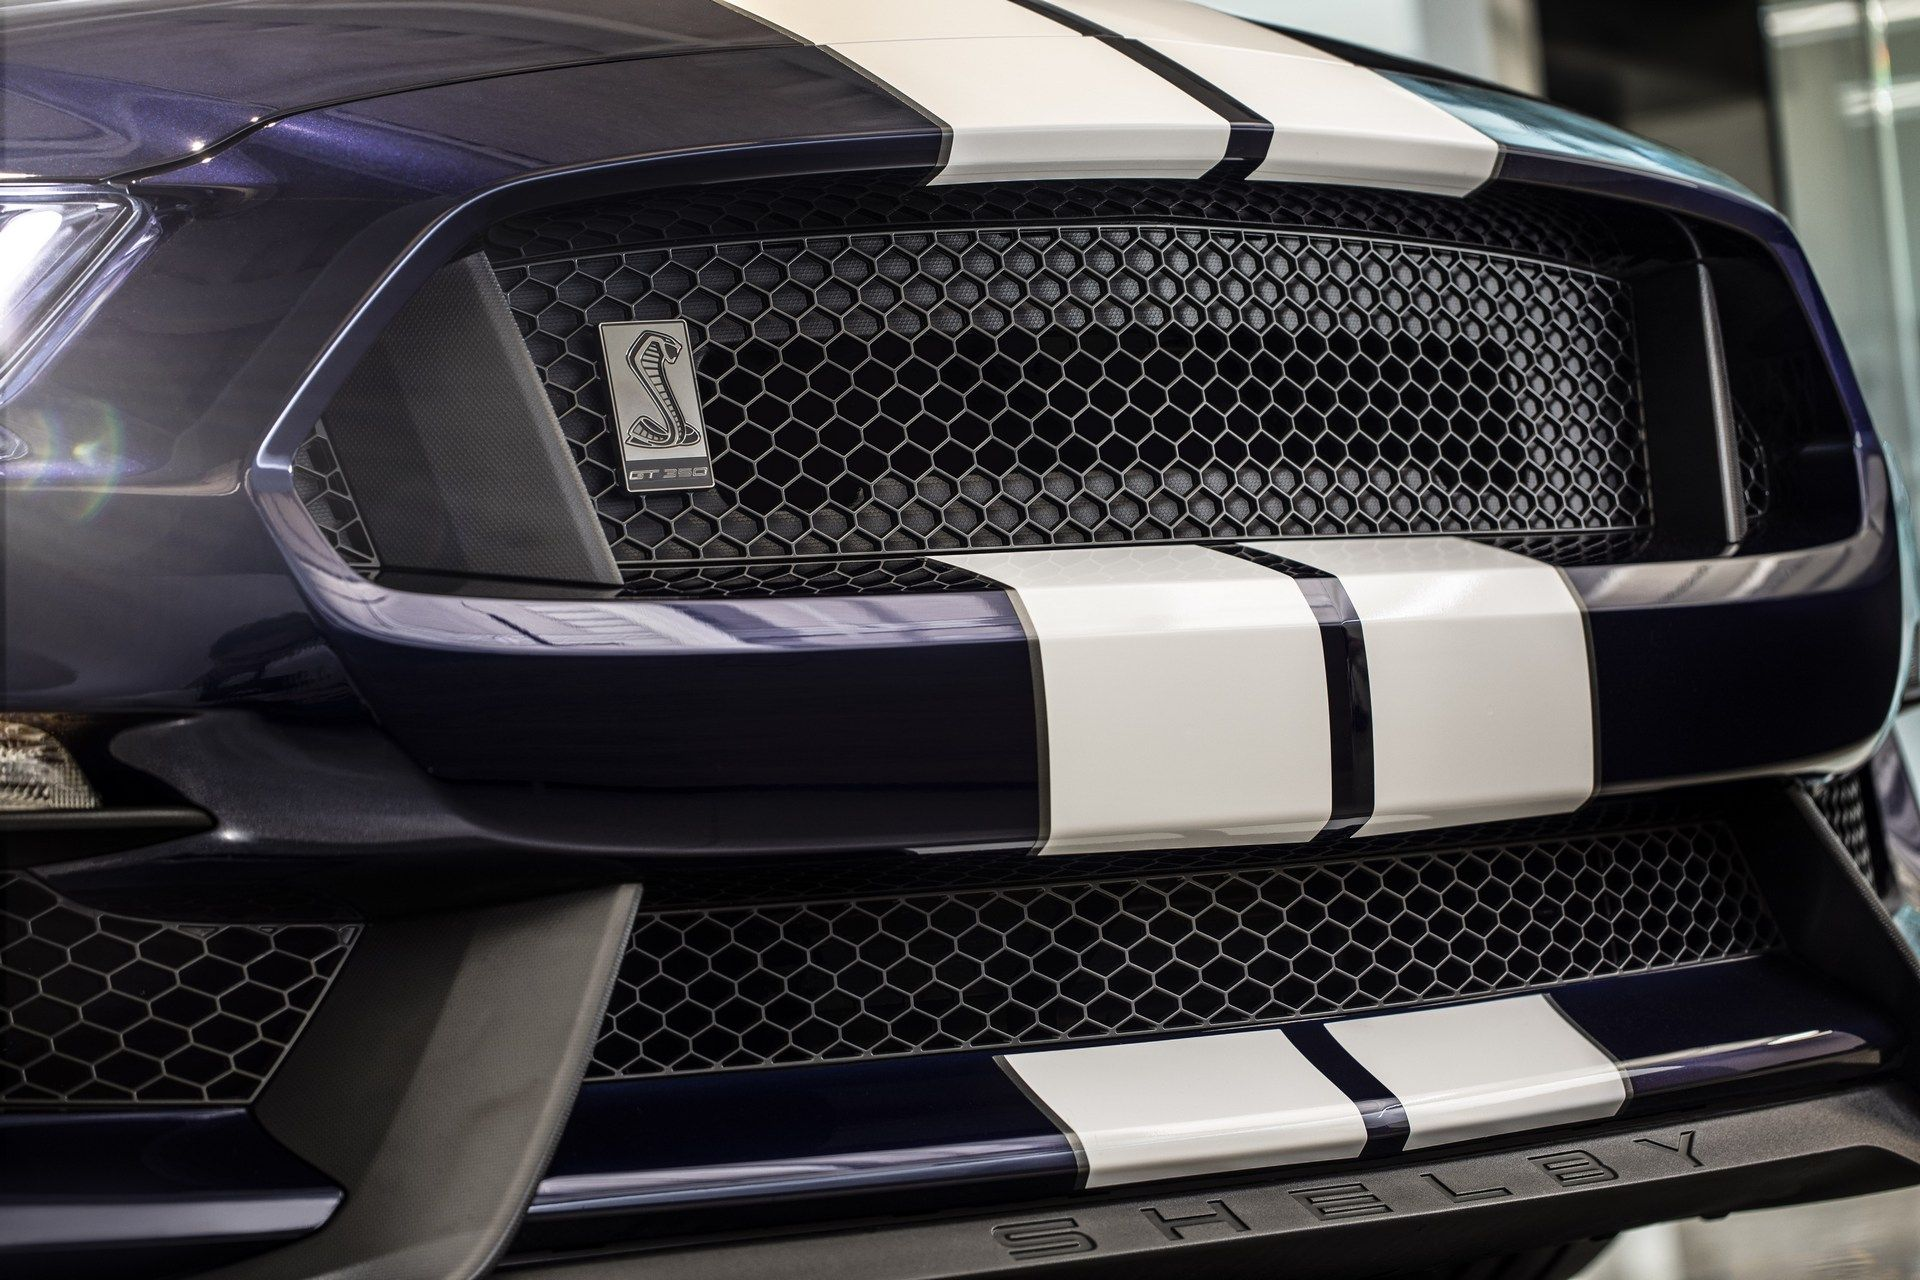 2019 Ford Mustang Shelby GT350 Gets Some Aero